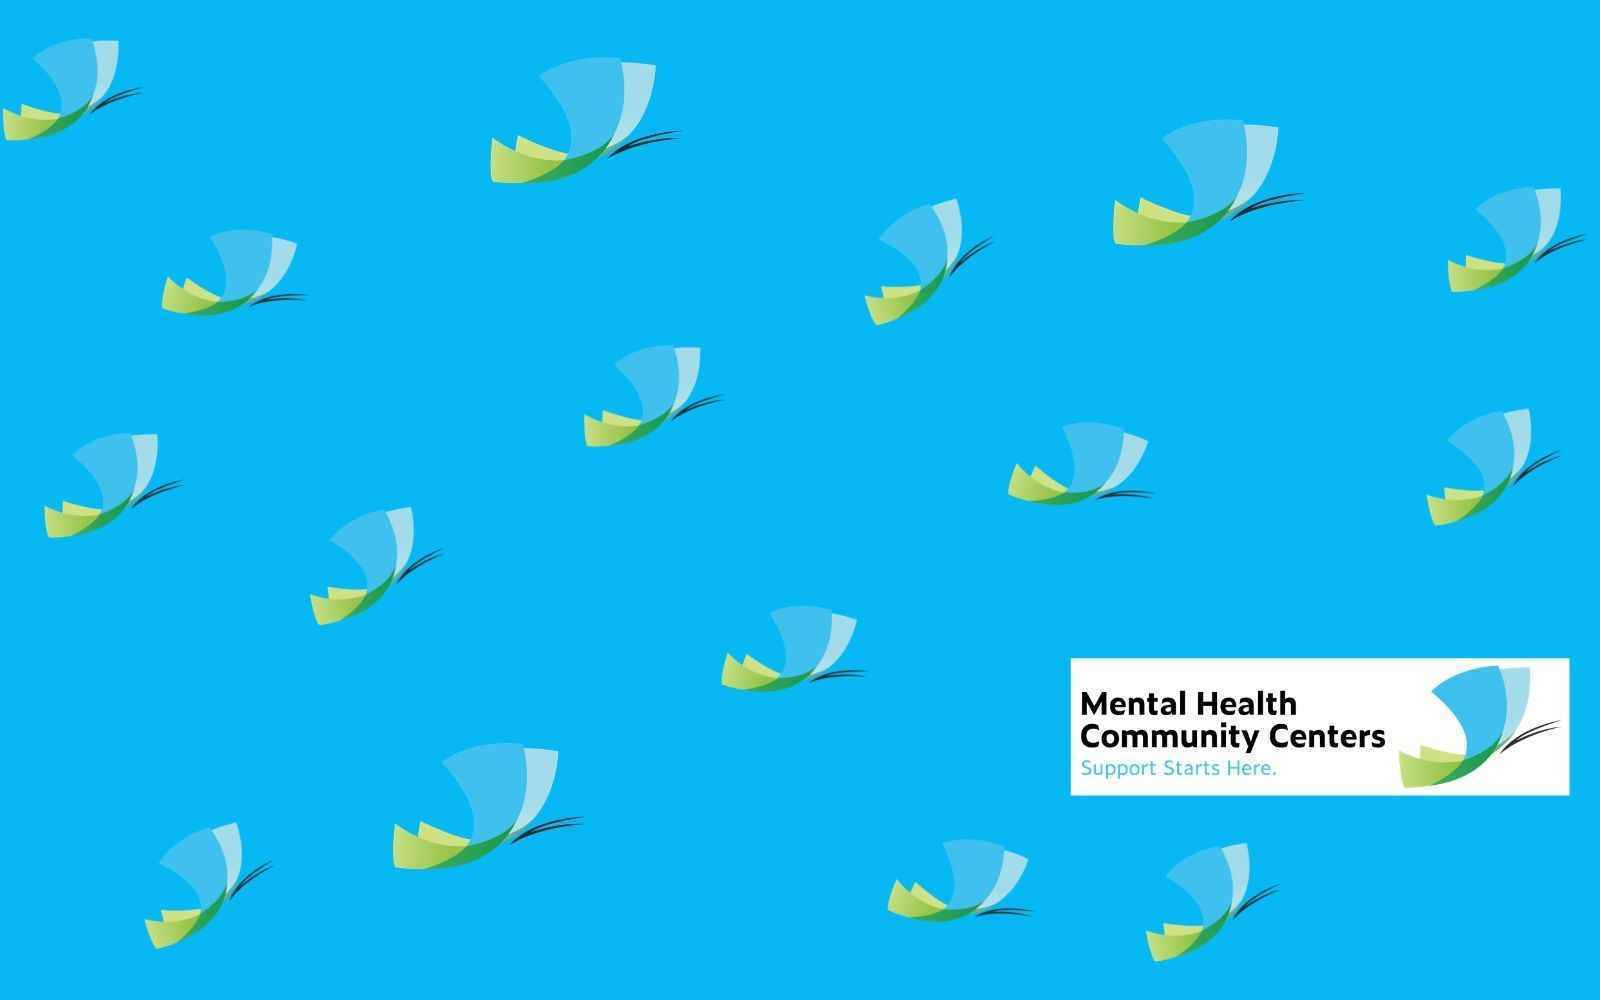 Donate now to support adults managing mental health image